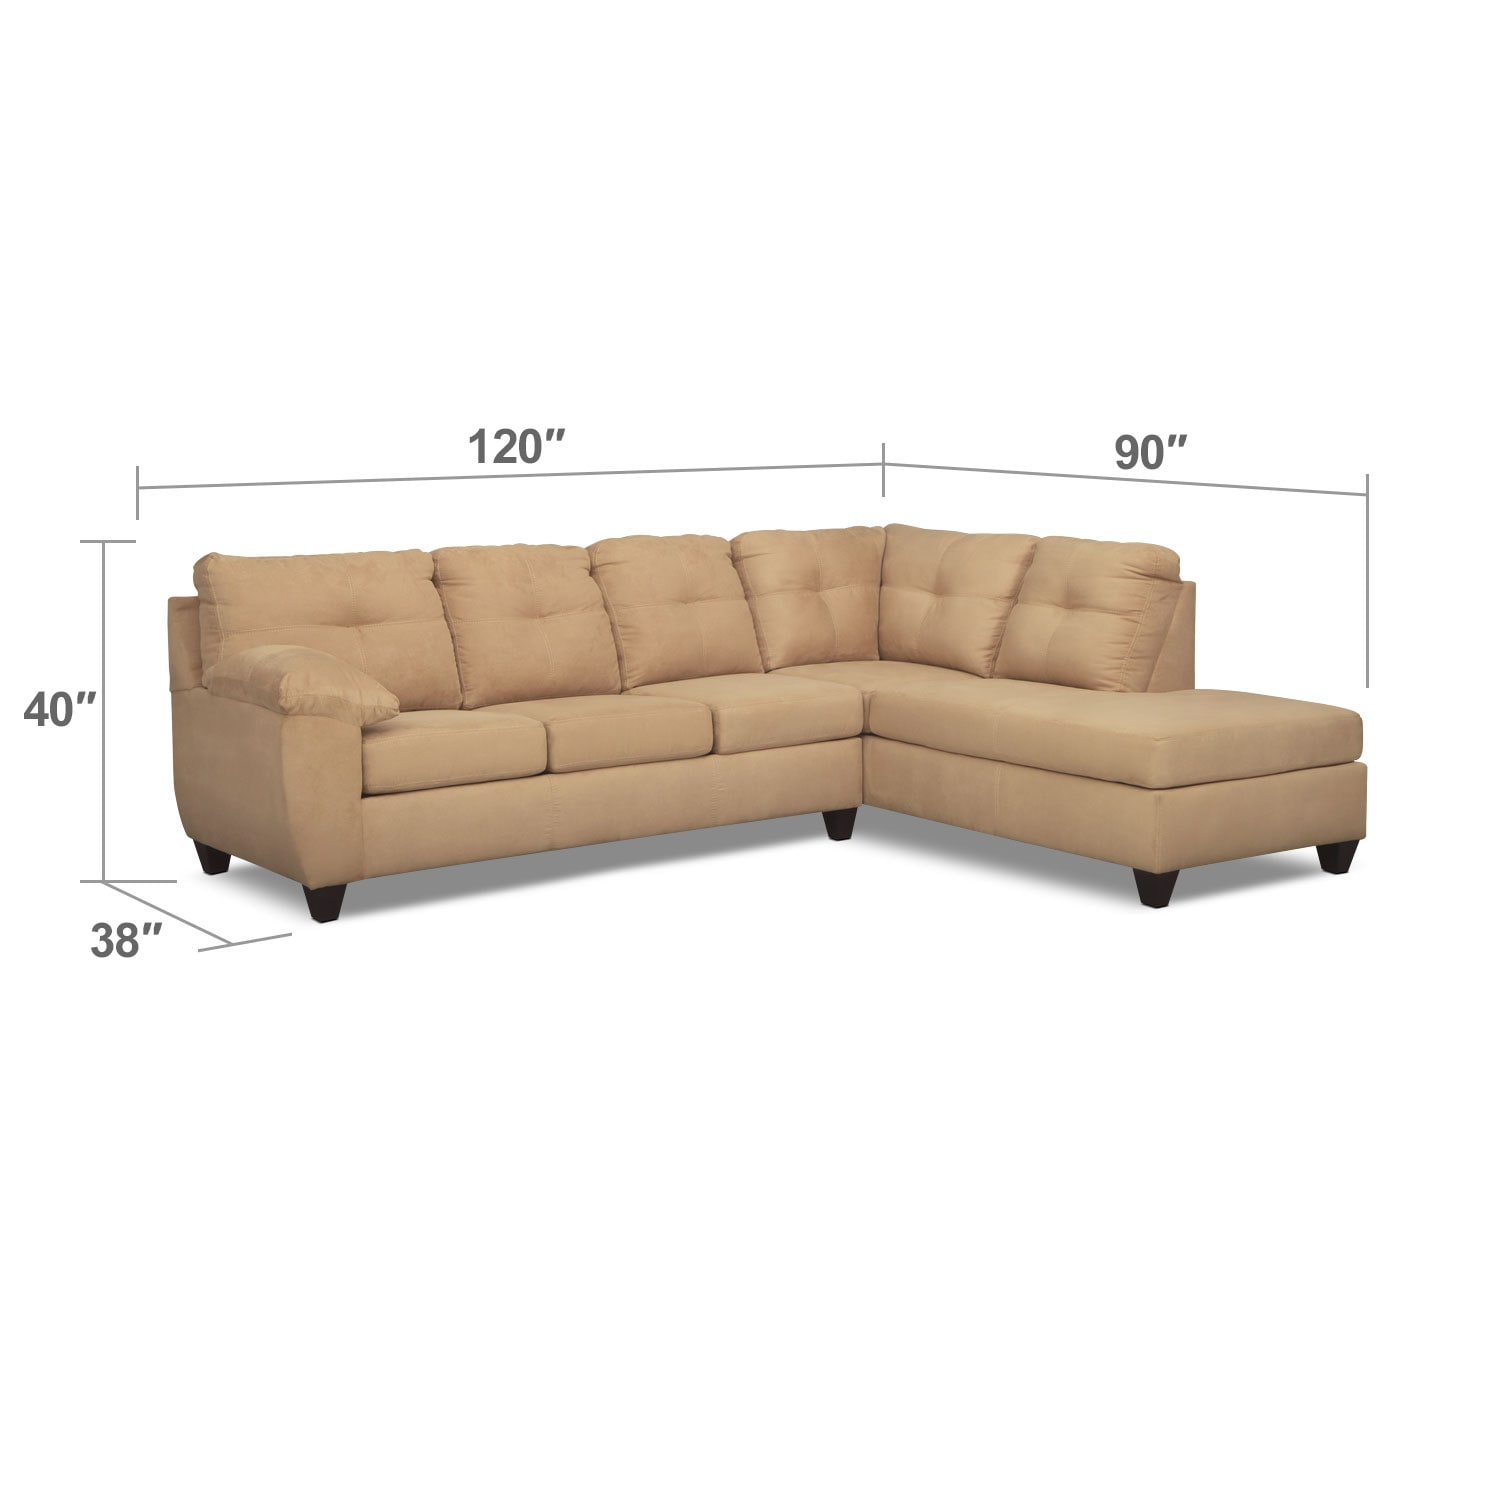 Living Room Furniture - Rialto Camel 2 Pc. Memory Foam Sleeper Sectional with Right-Facing Chaise